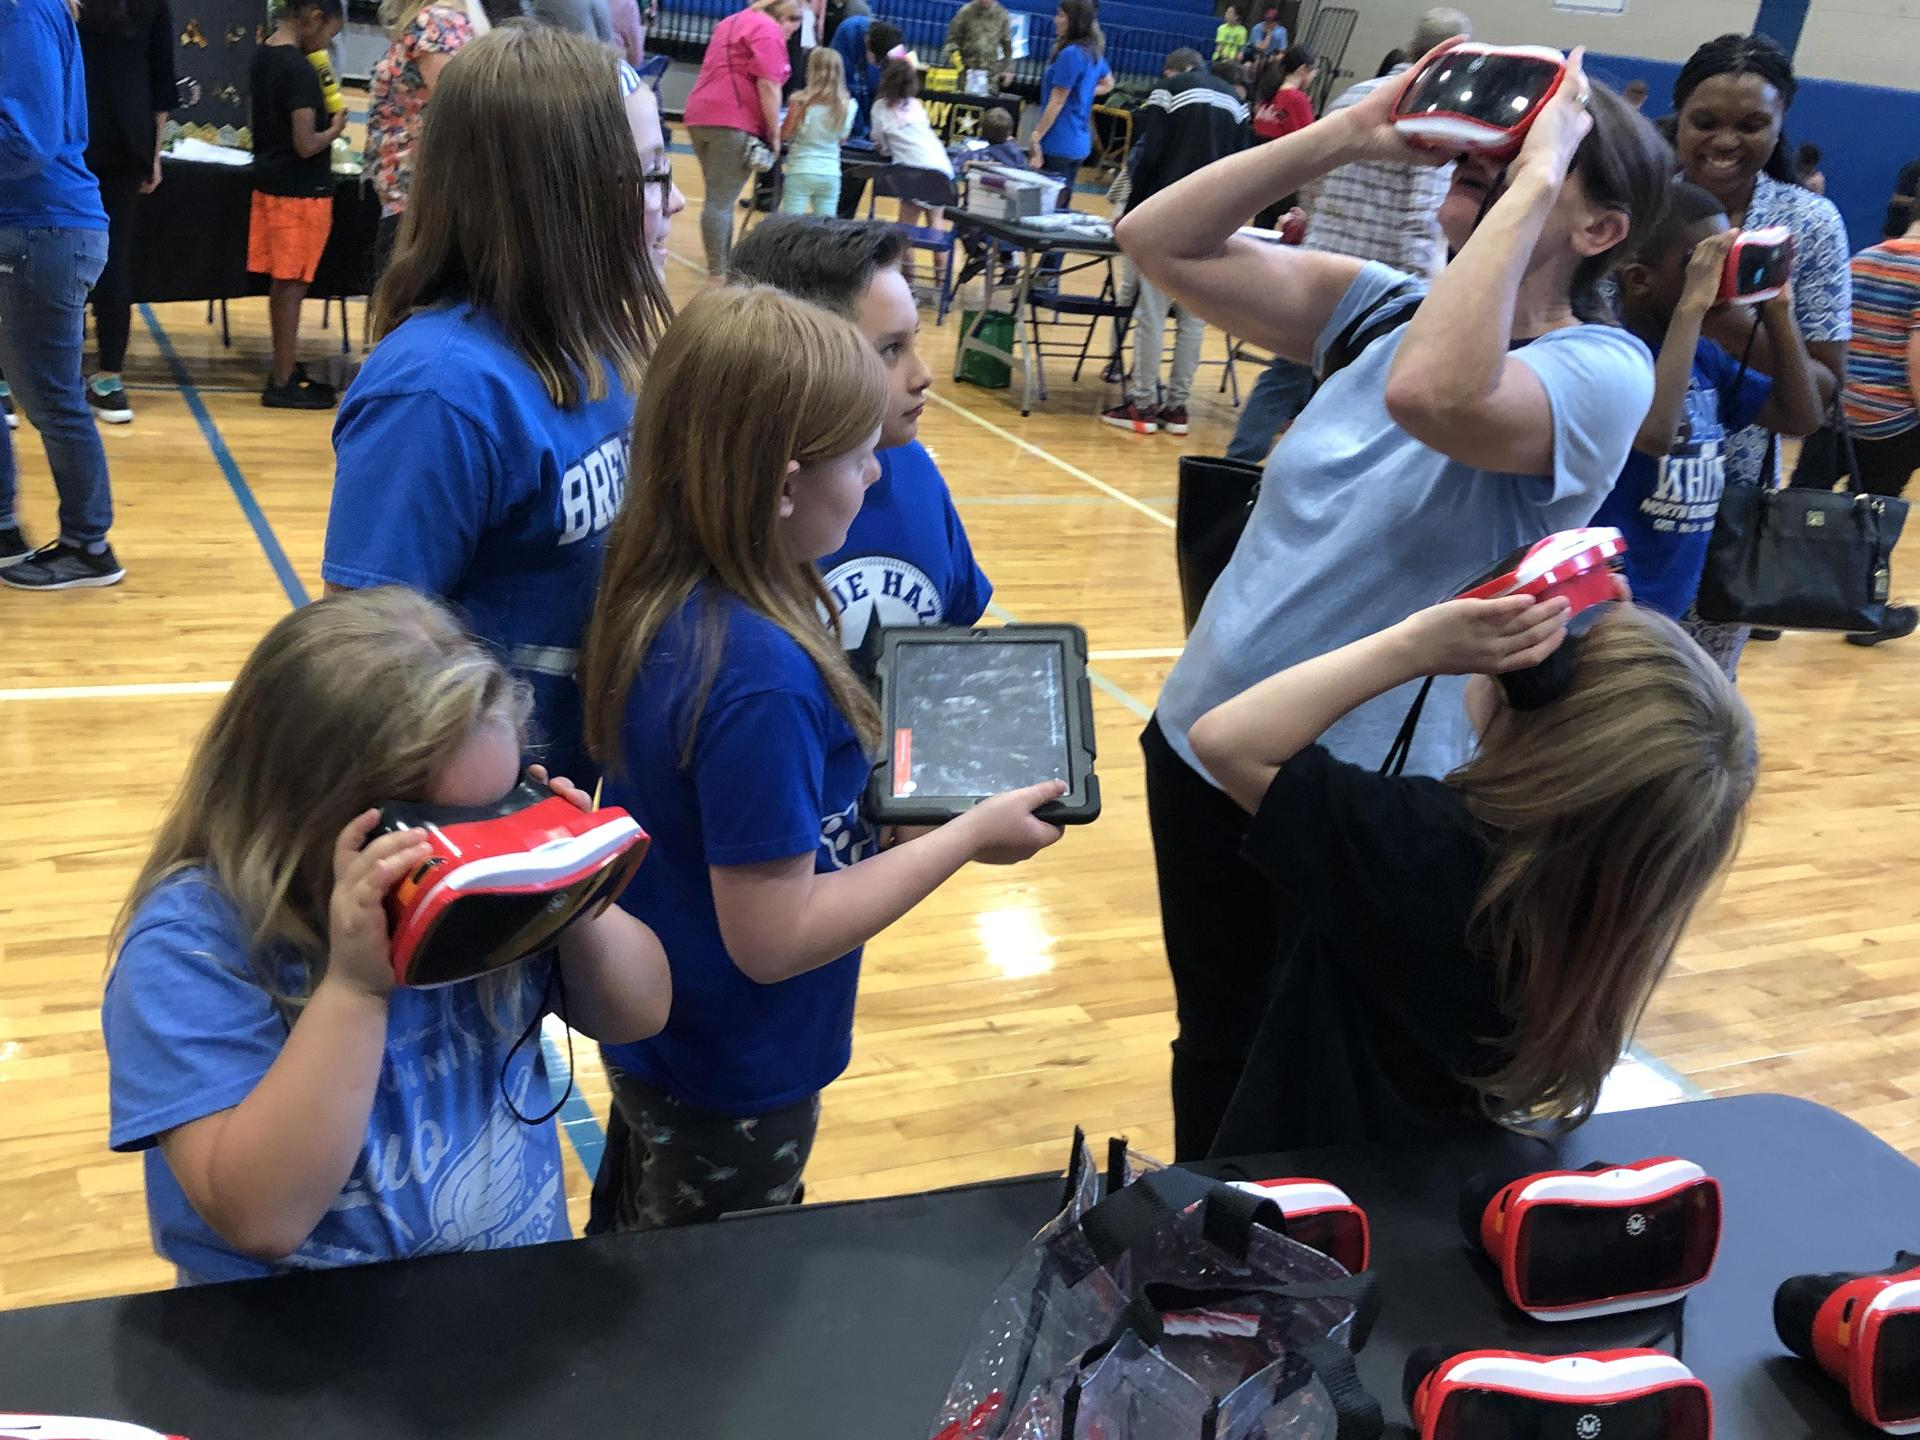 Virtual Reality demonstrated at BearBytes Tech Expo.